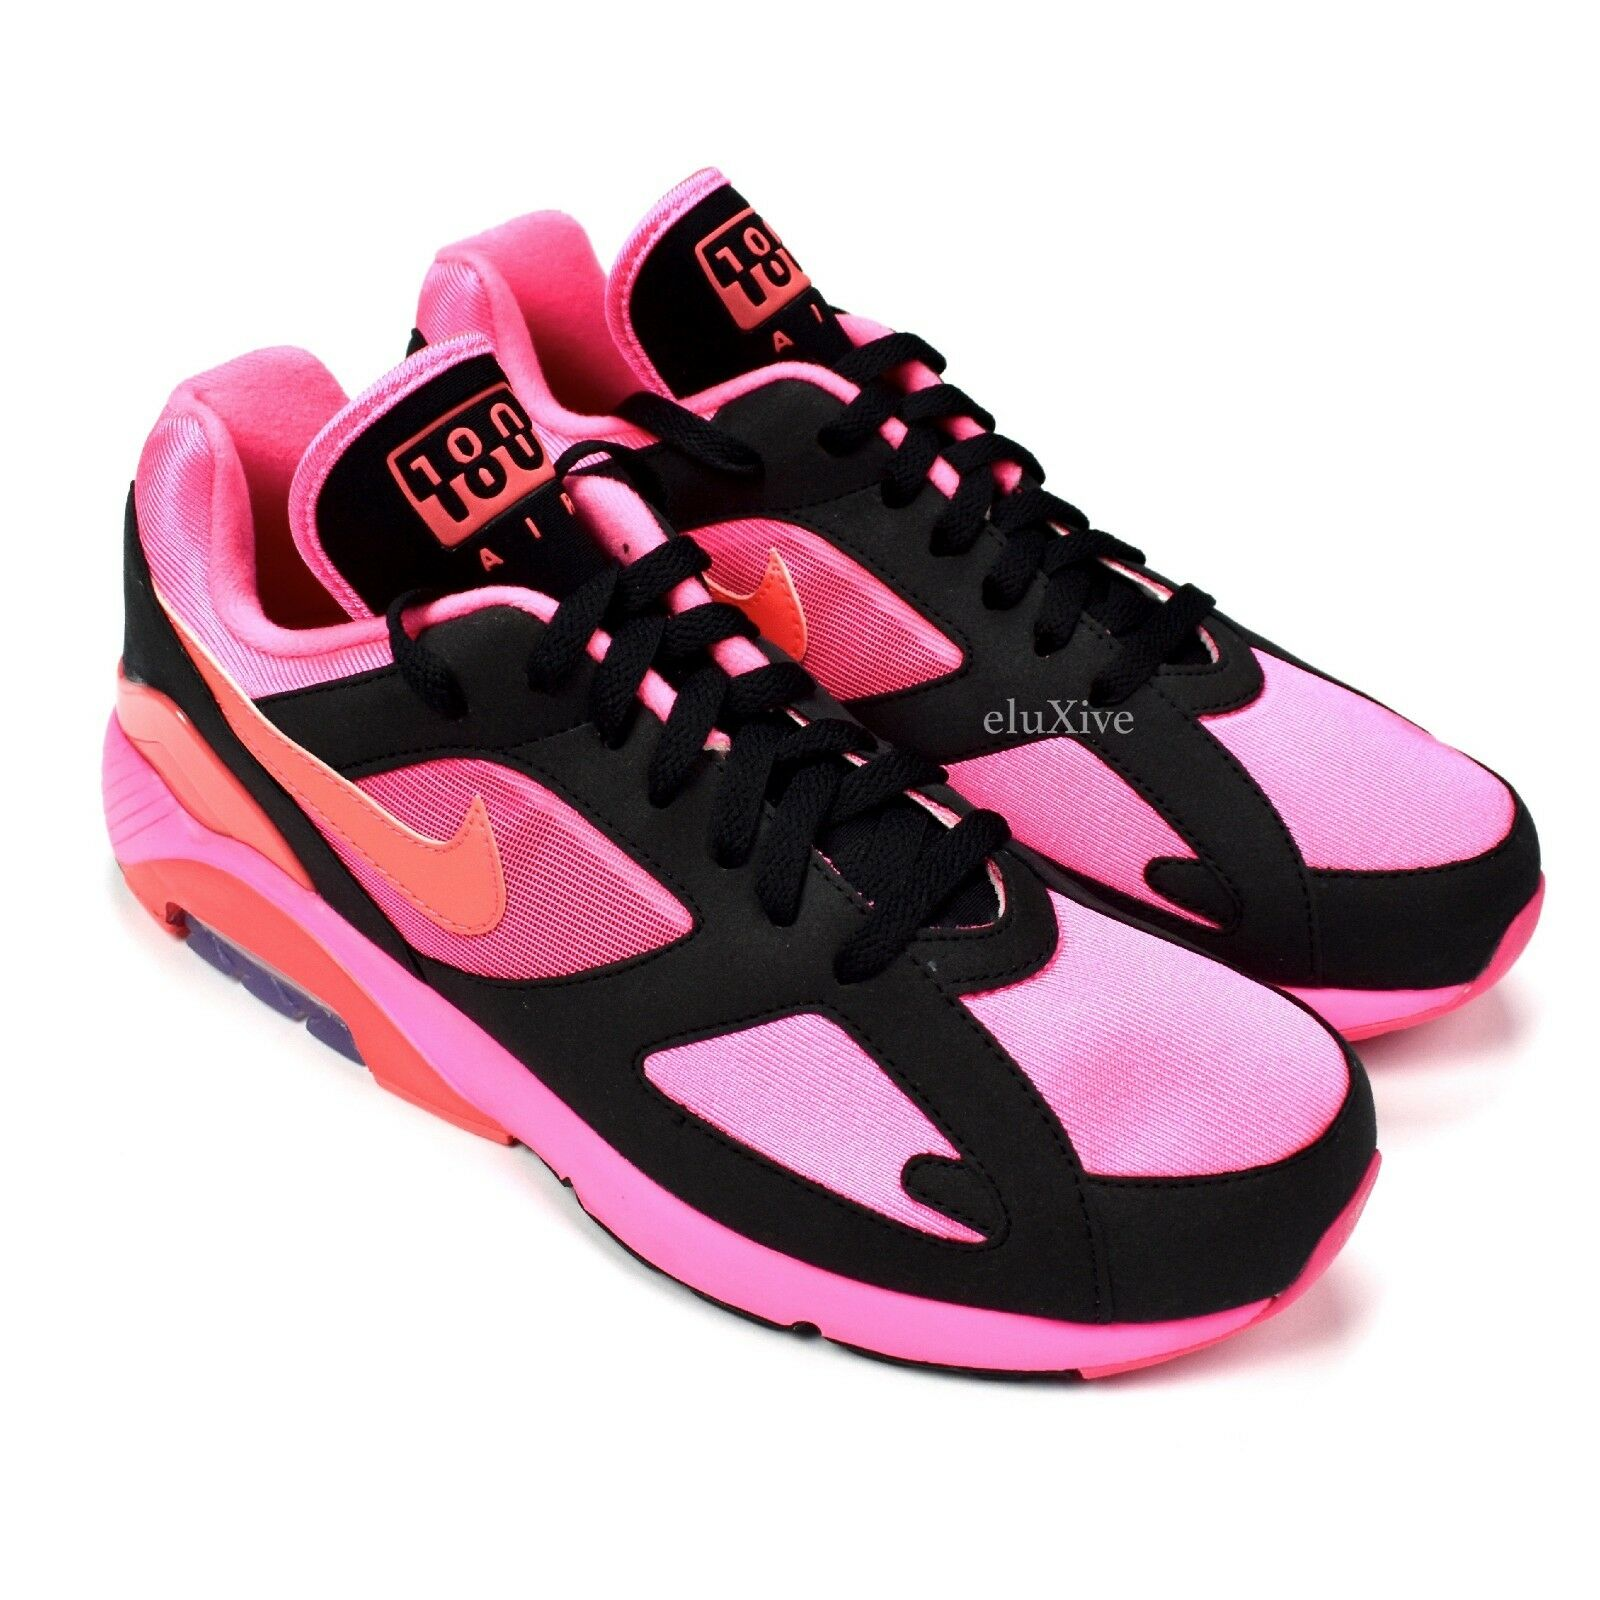 NWT Comme des Garcons Nike Air Max 180 CDG Black Pink Sneakers DS 2018 AUTHENTIC Seasonal clearance sale